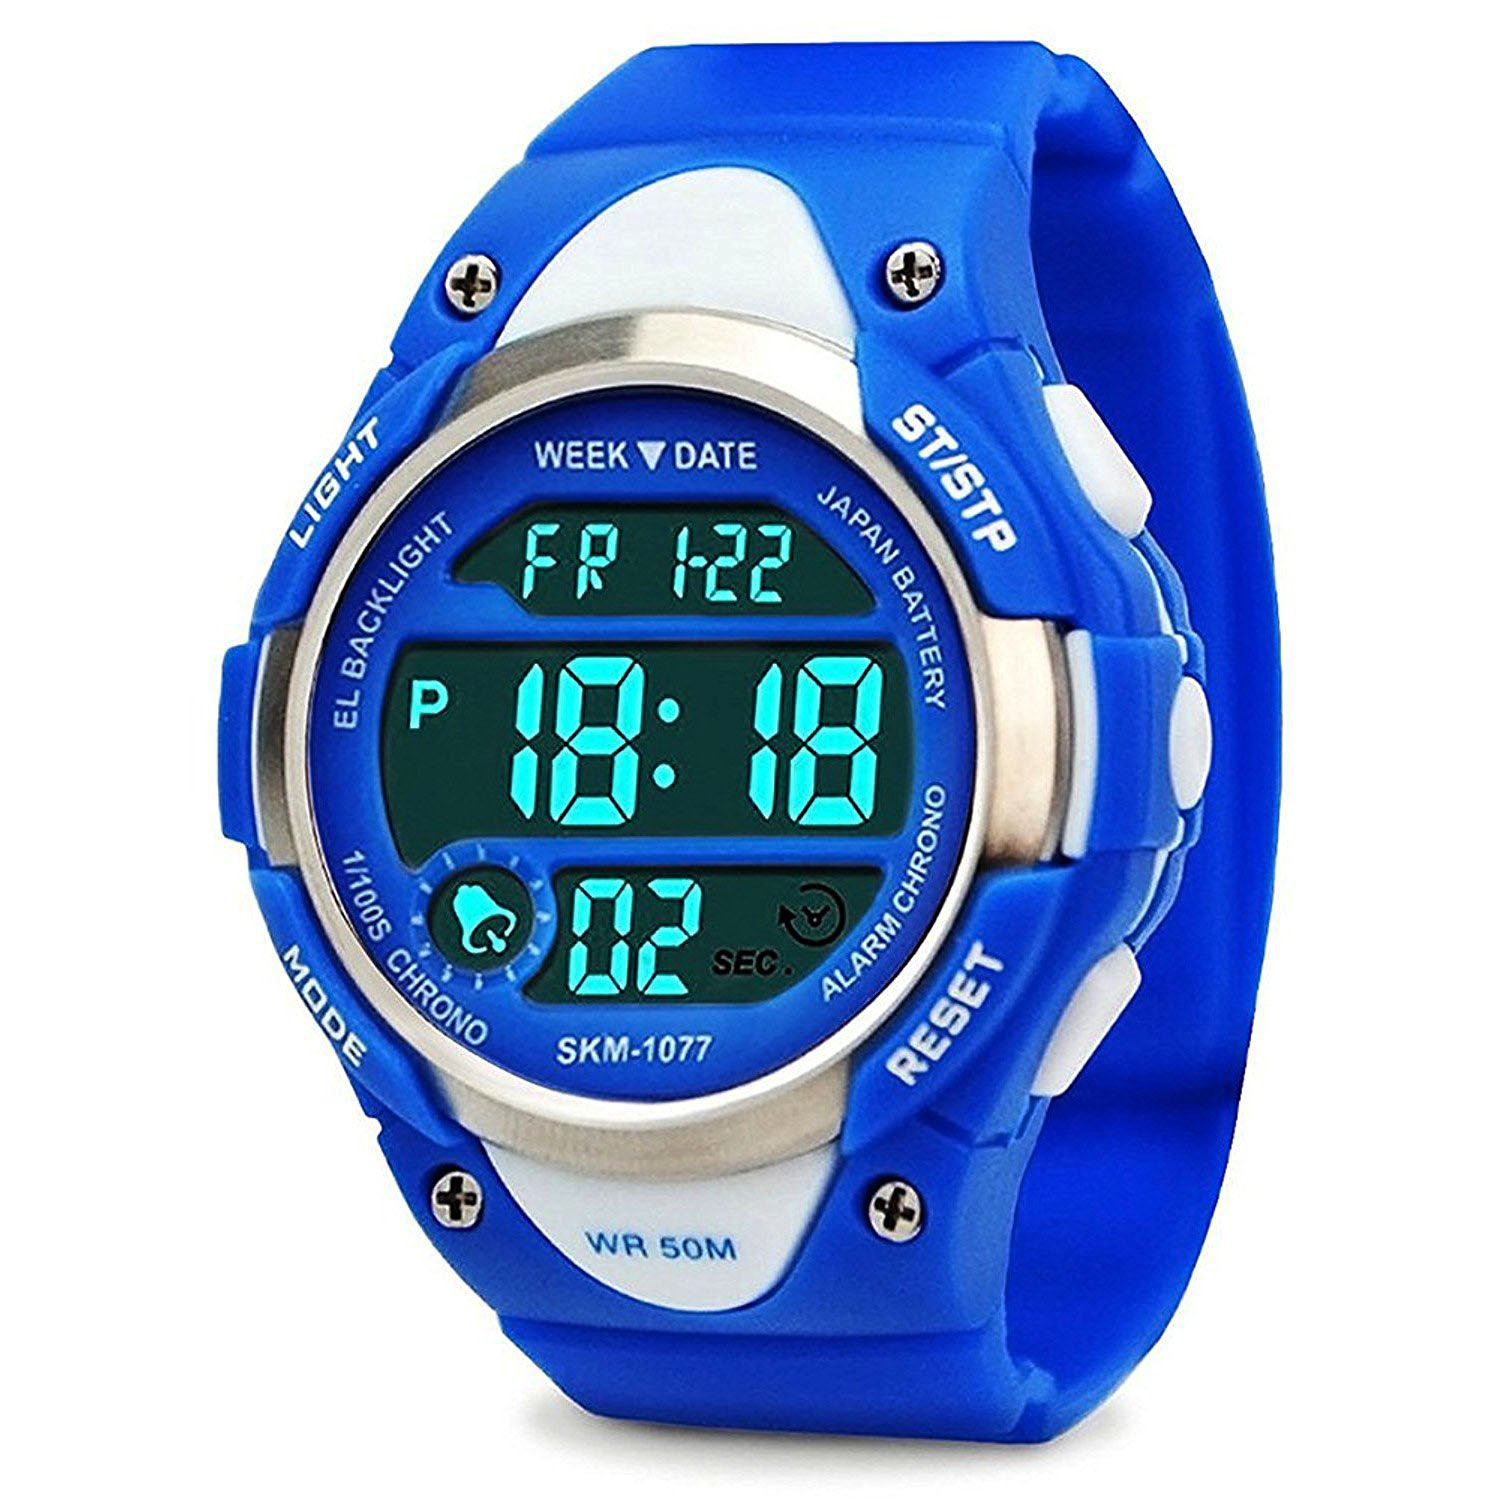 Boys Sport Digital Watch, Kids Outdoor Waterproof Electronic Watches with LED Alarm Stopwatch - Blue by cofuo (Image #1)